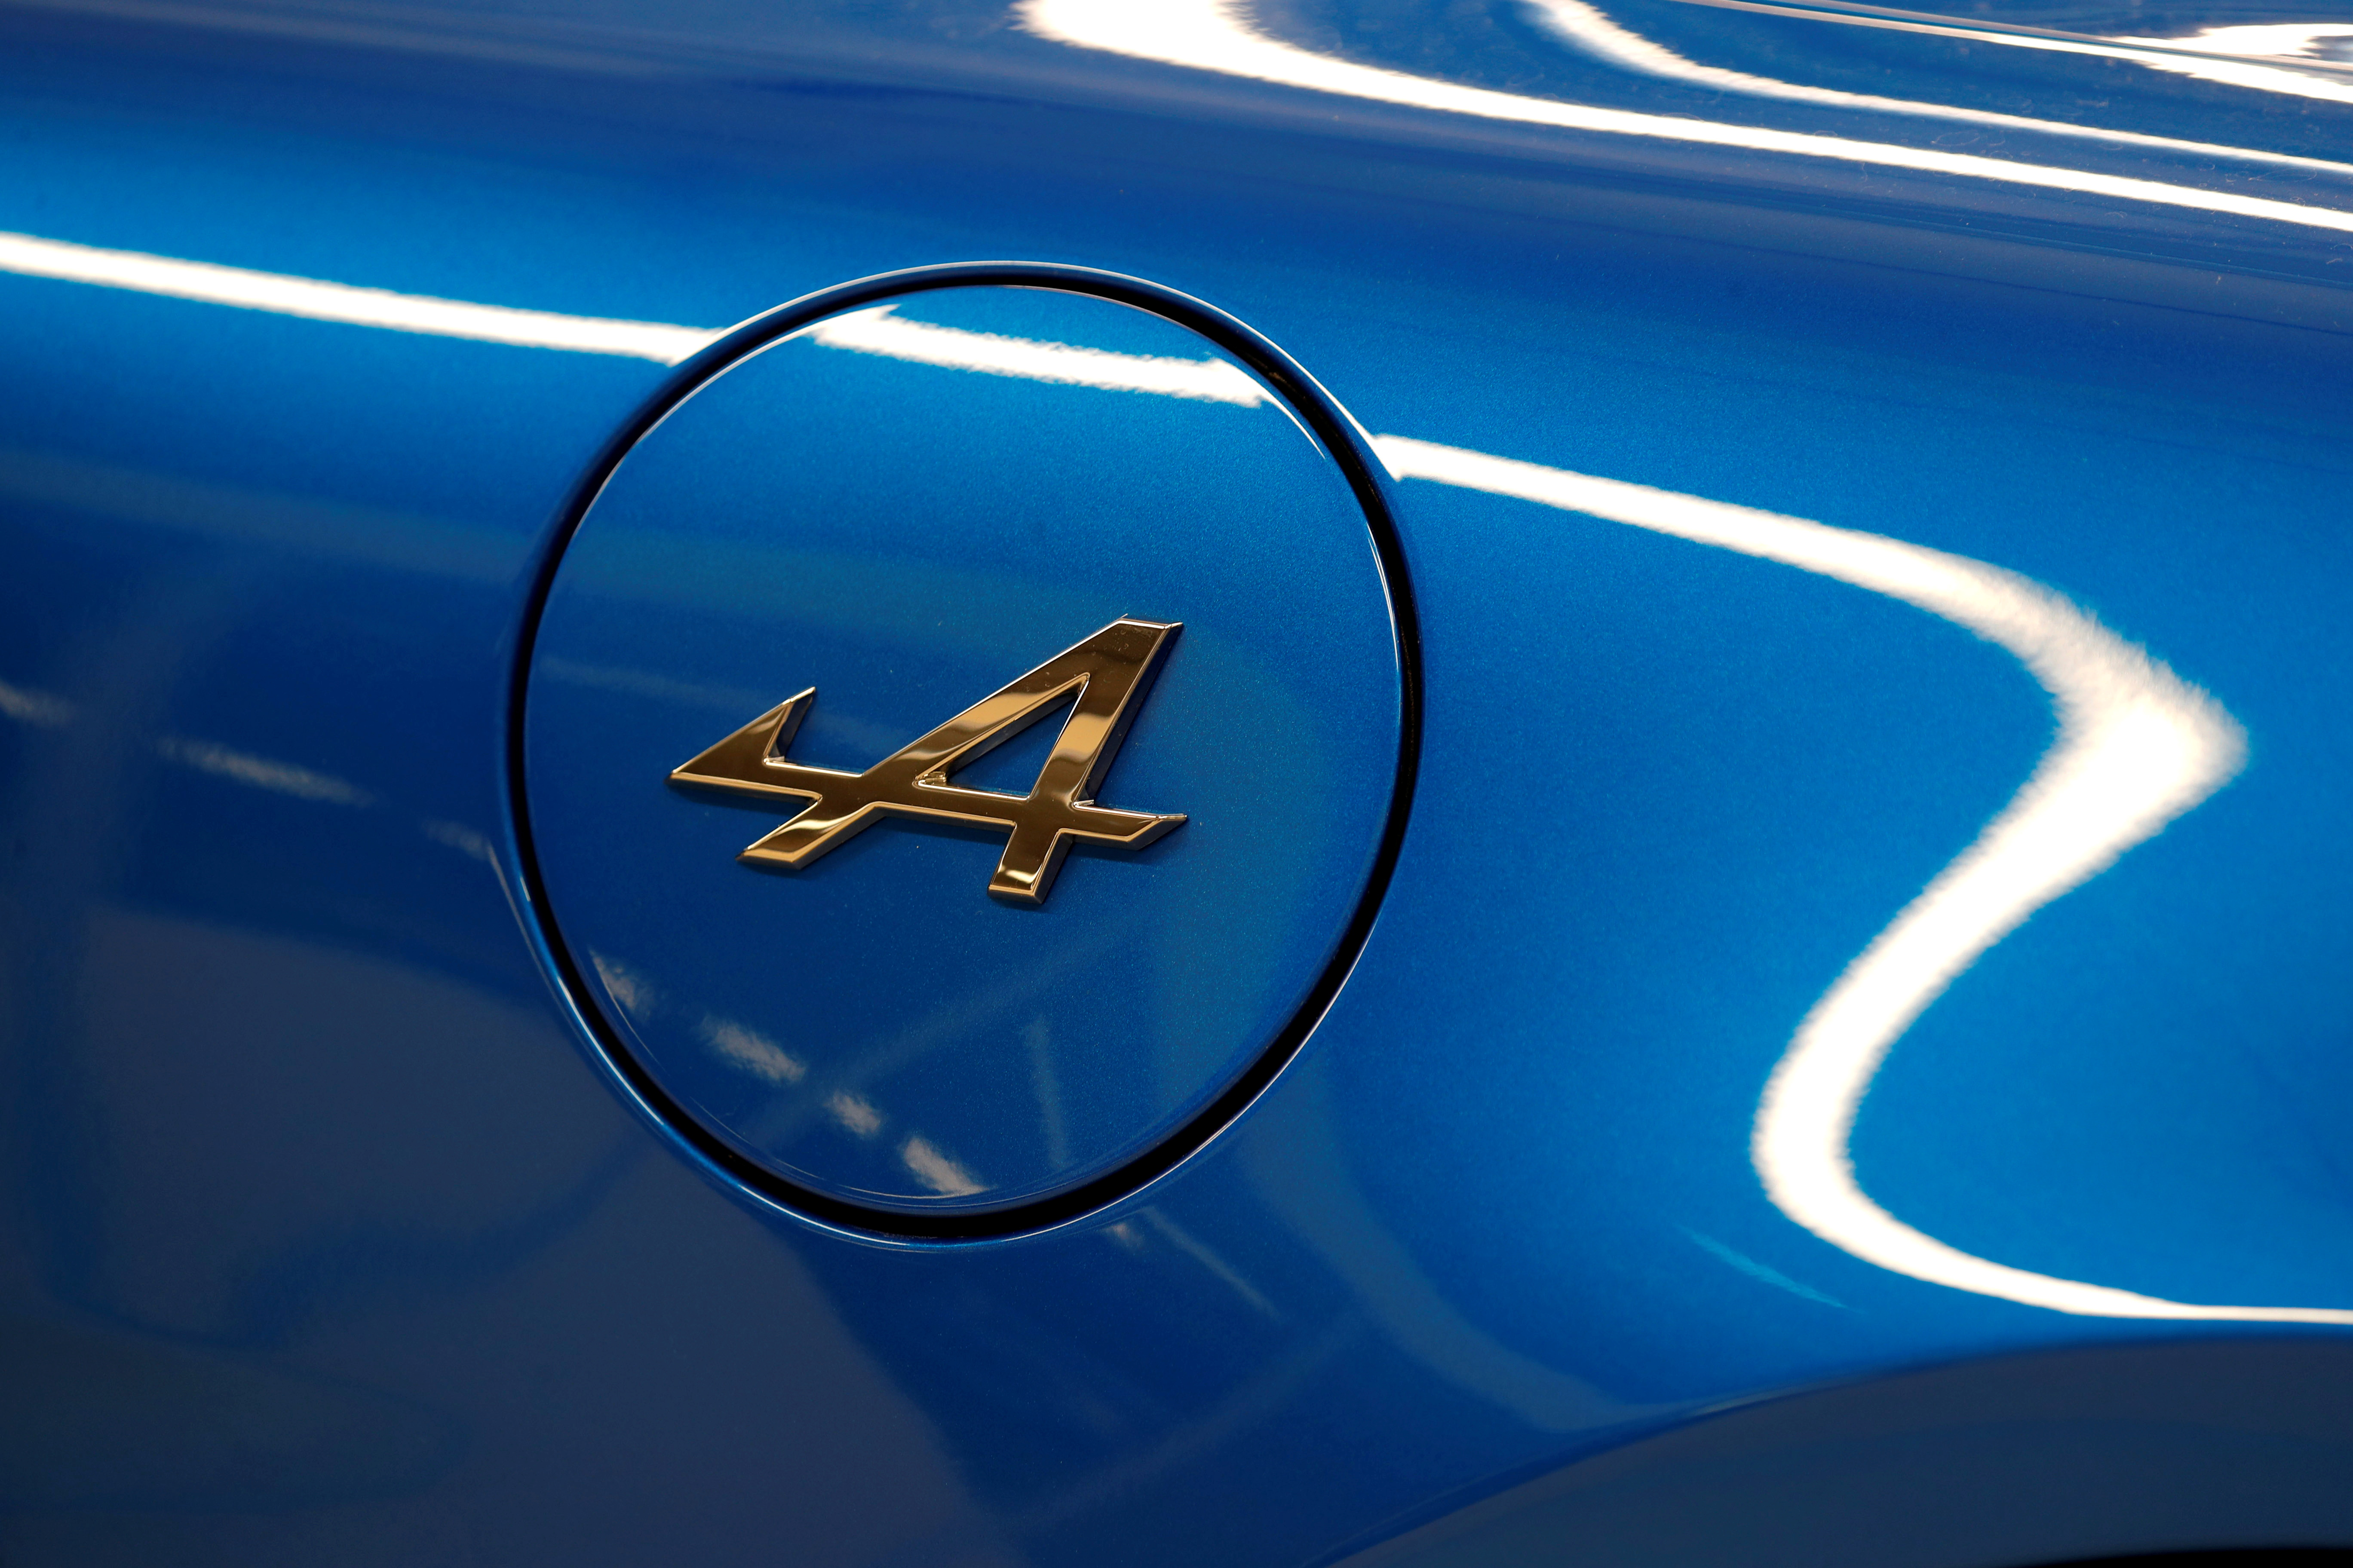 The Alpine logo is seen on the new Alpine A110 sports car during the inauguration of the new production line in Dieppe, France, December 14, 2017. REUTERS/Charles Platiau/File Photo